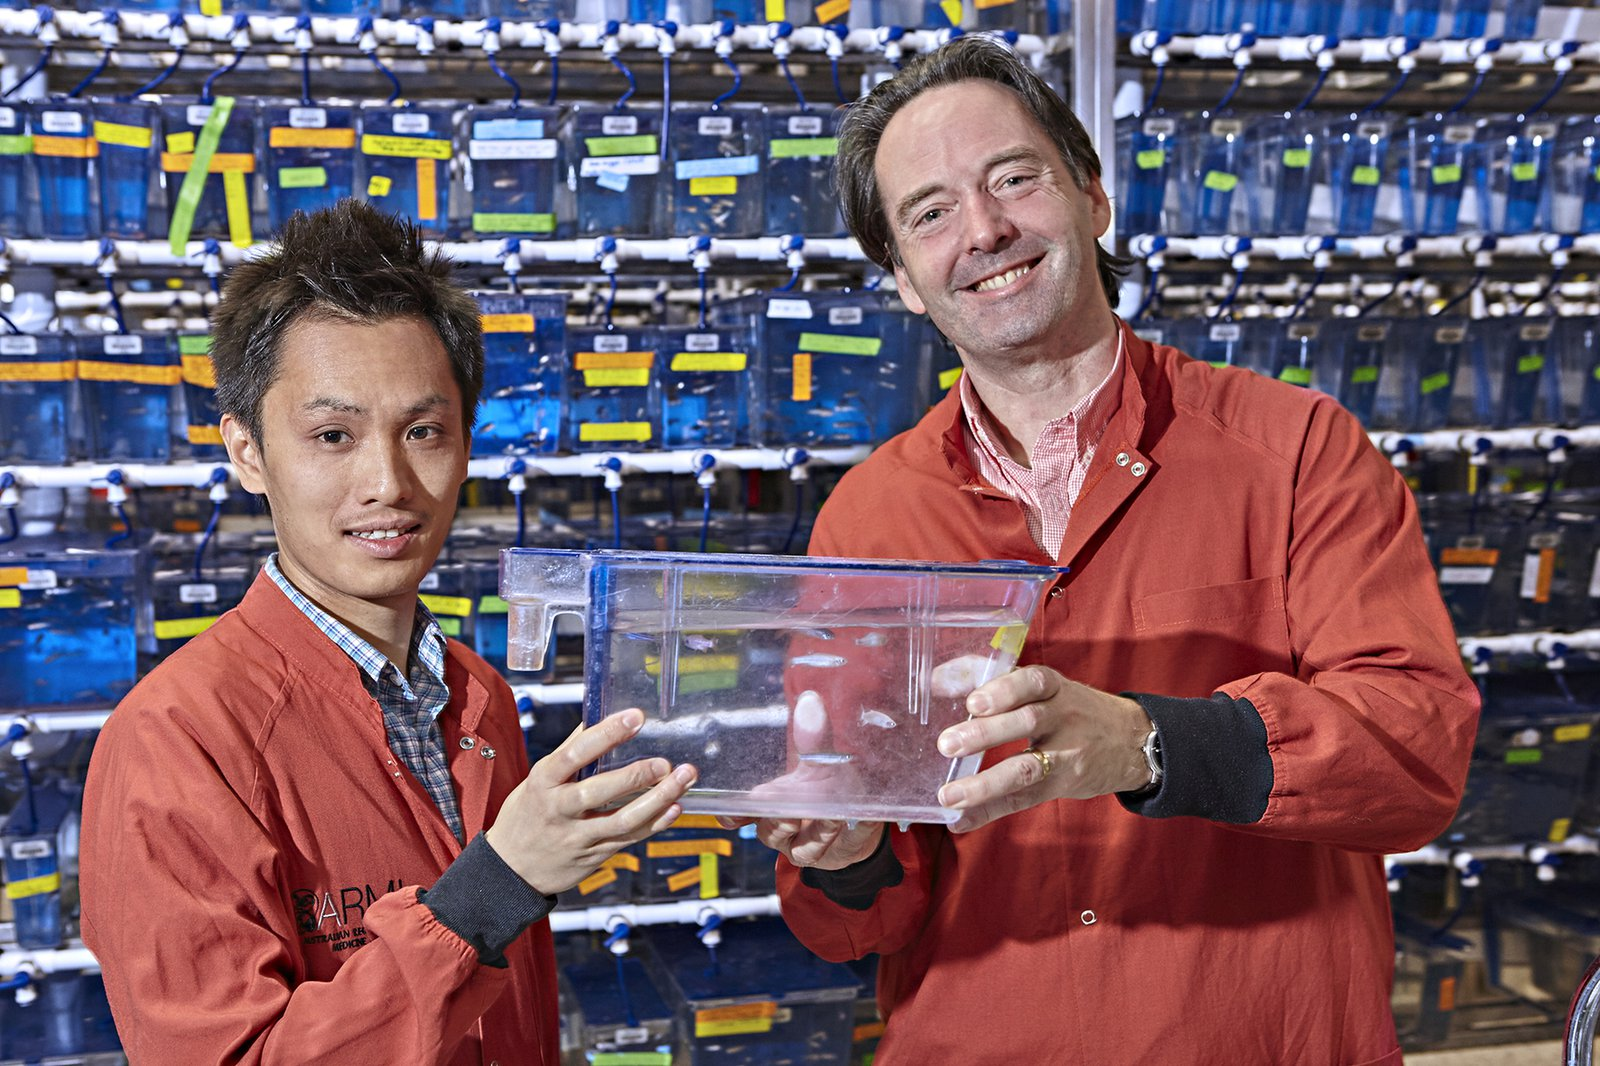 Phong Nguyen and Professor Peter Currie